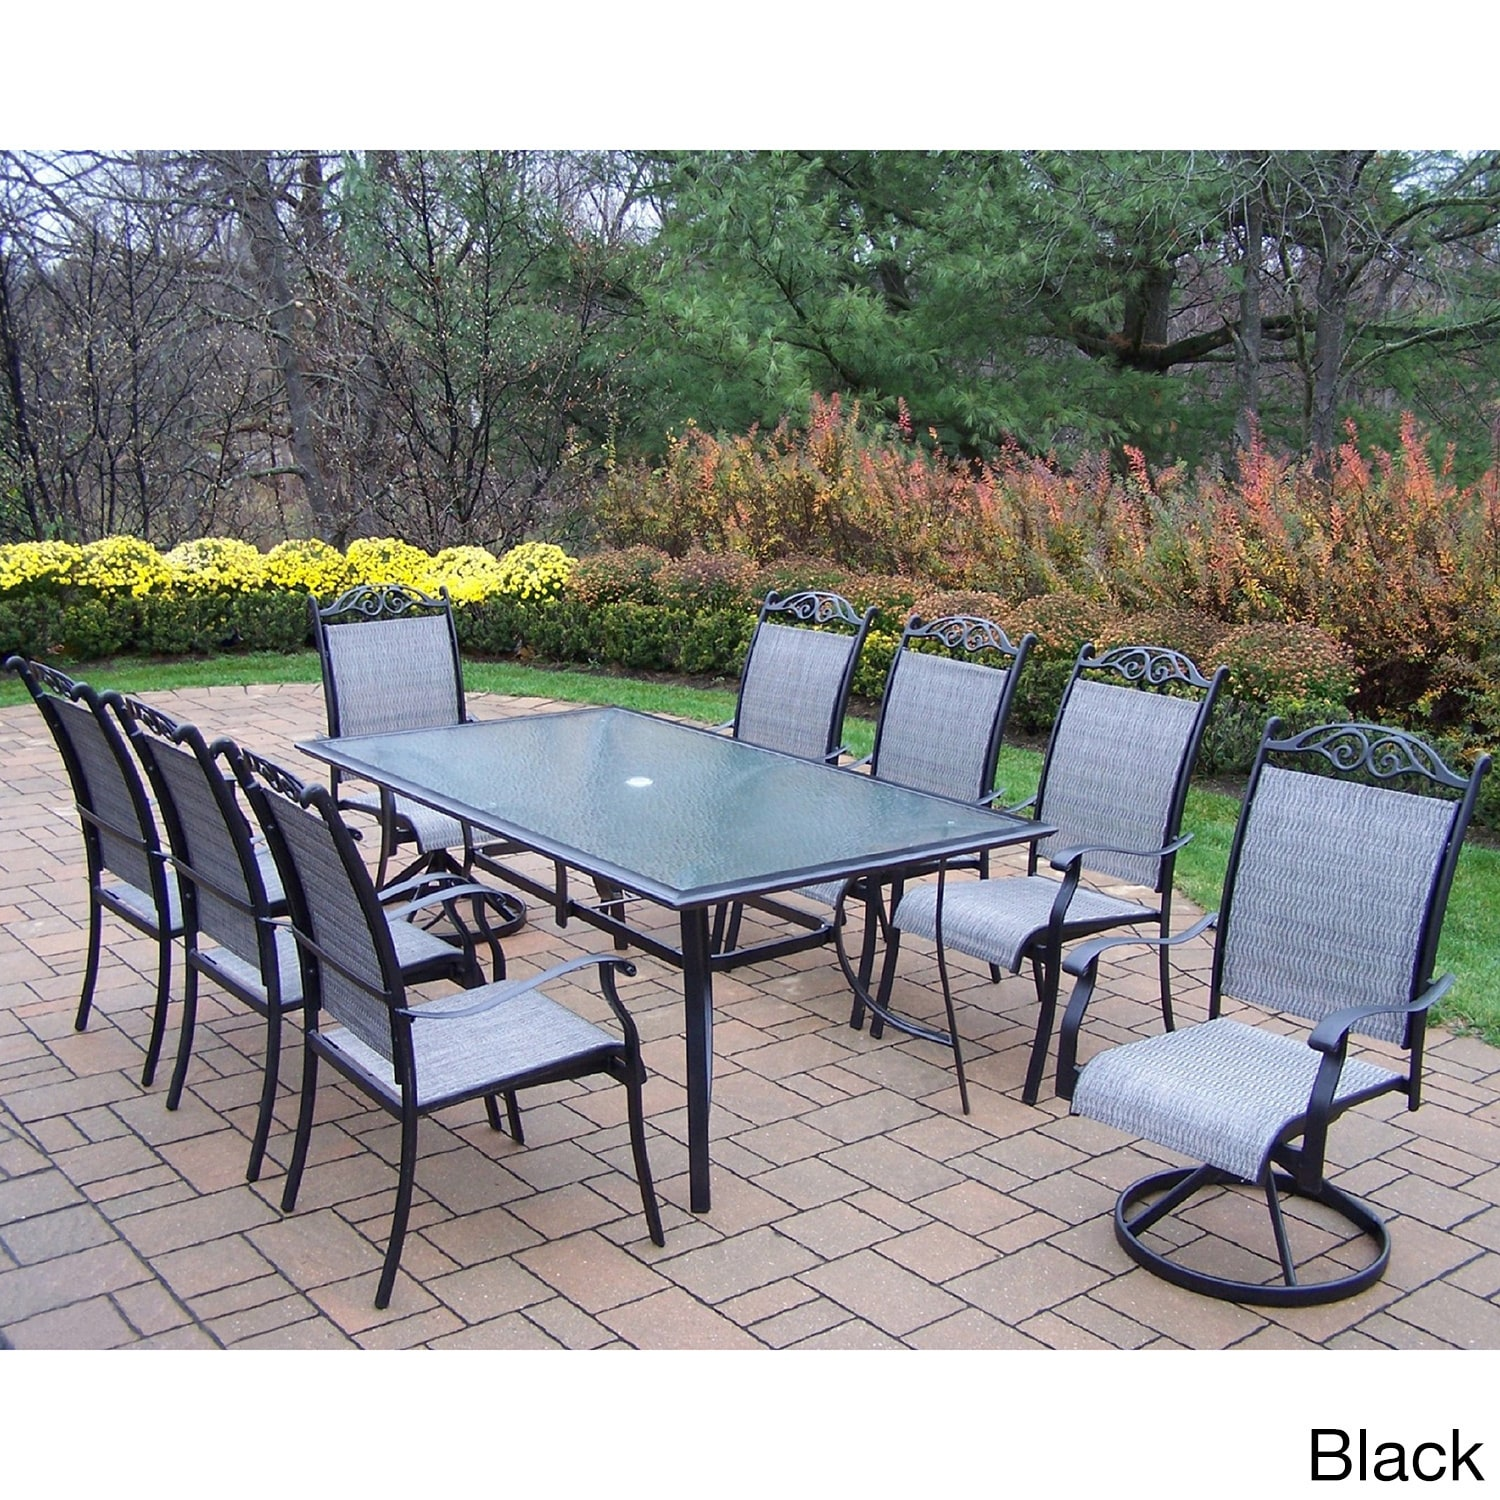 9 Piece Outdoor Dining Set Aluminum Sling 9 Piece Dining Set